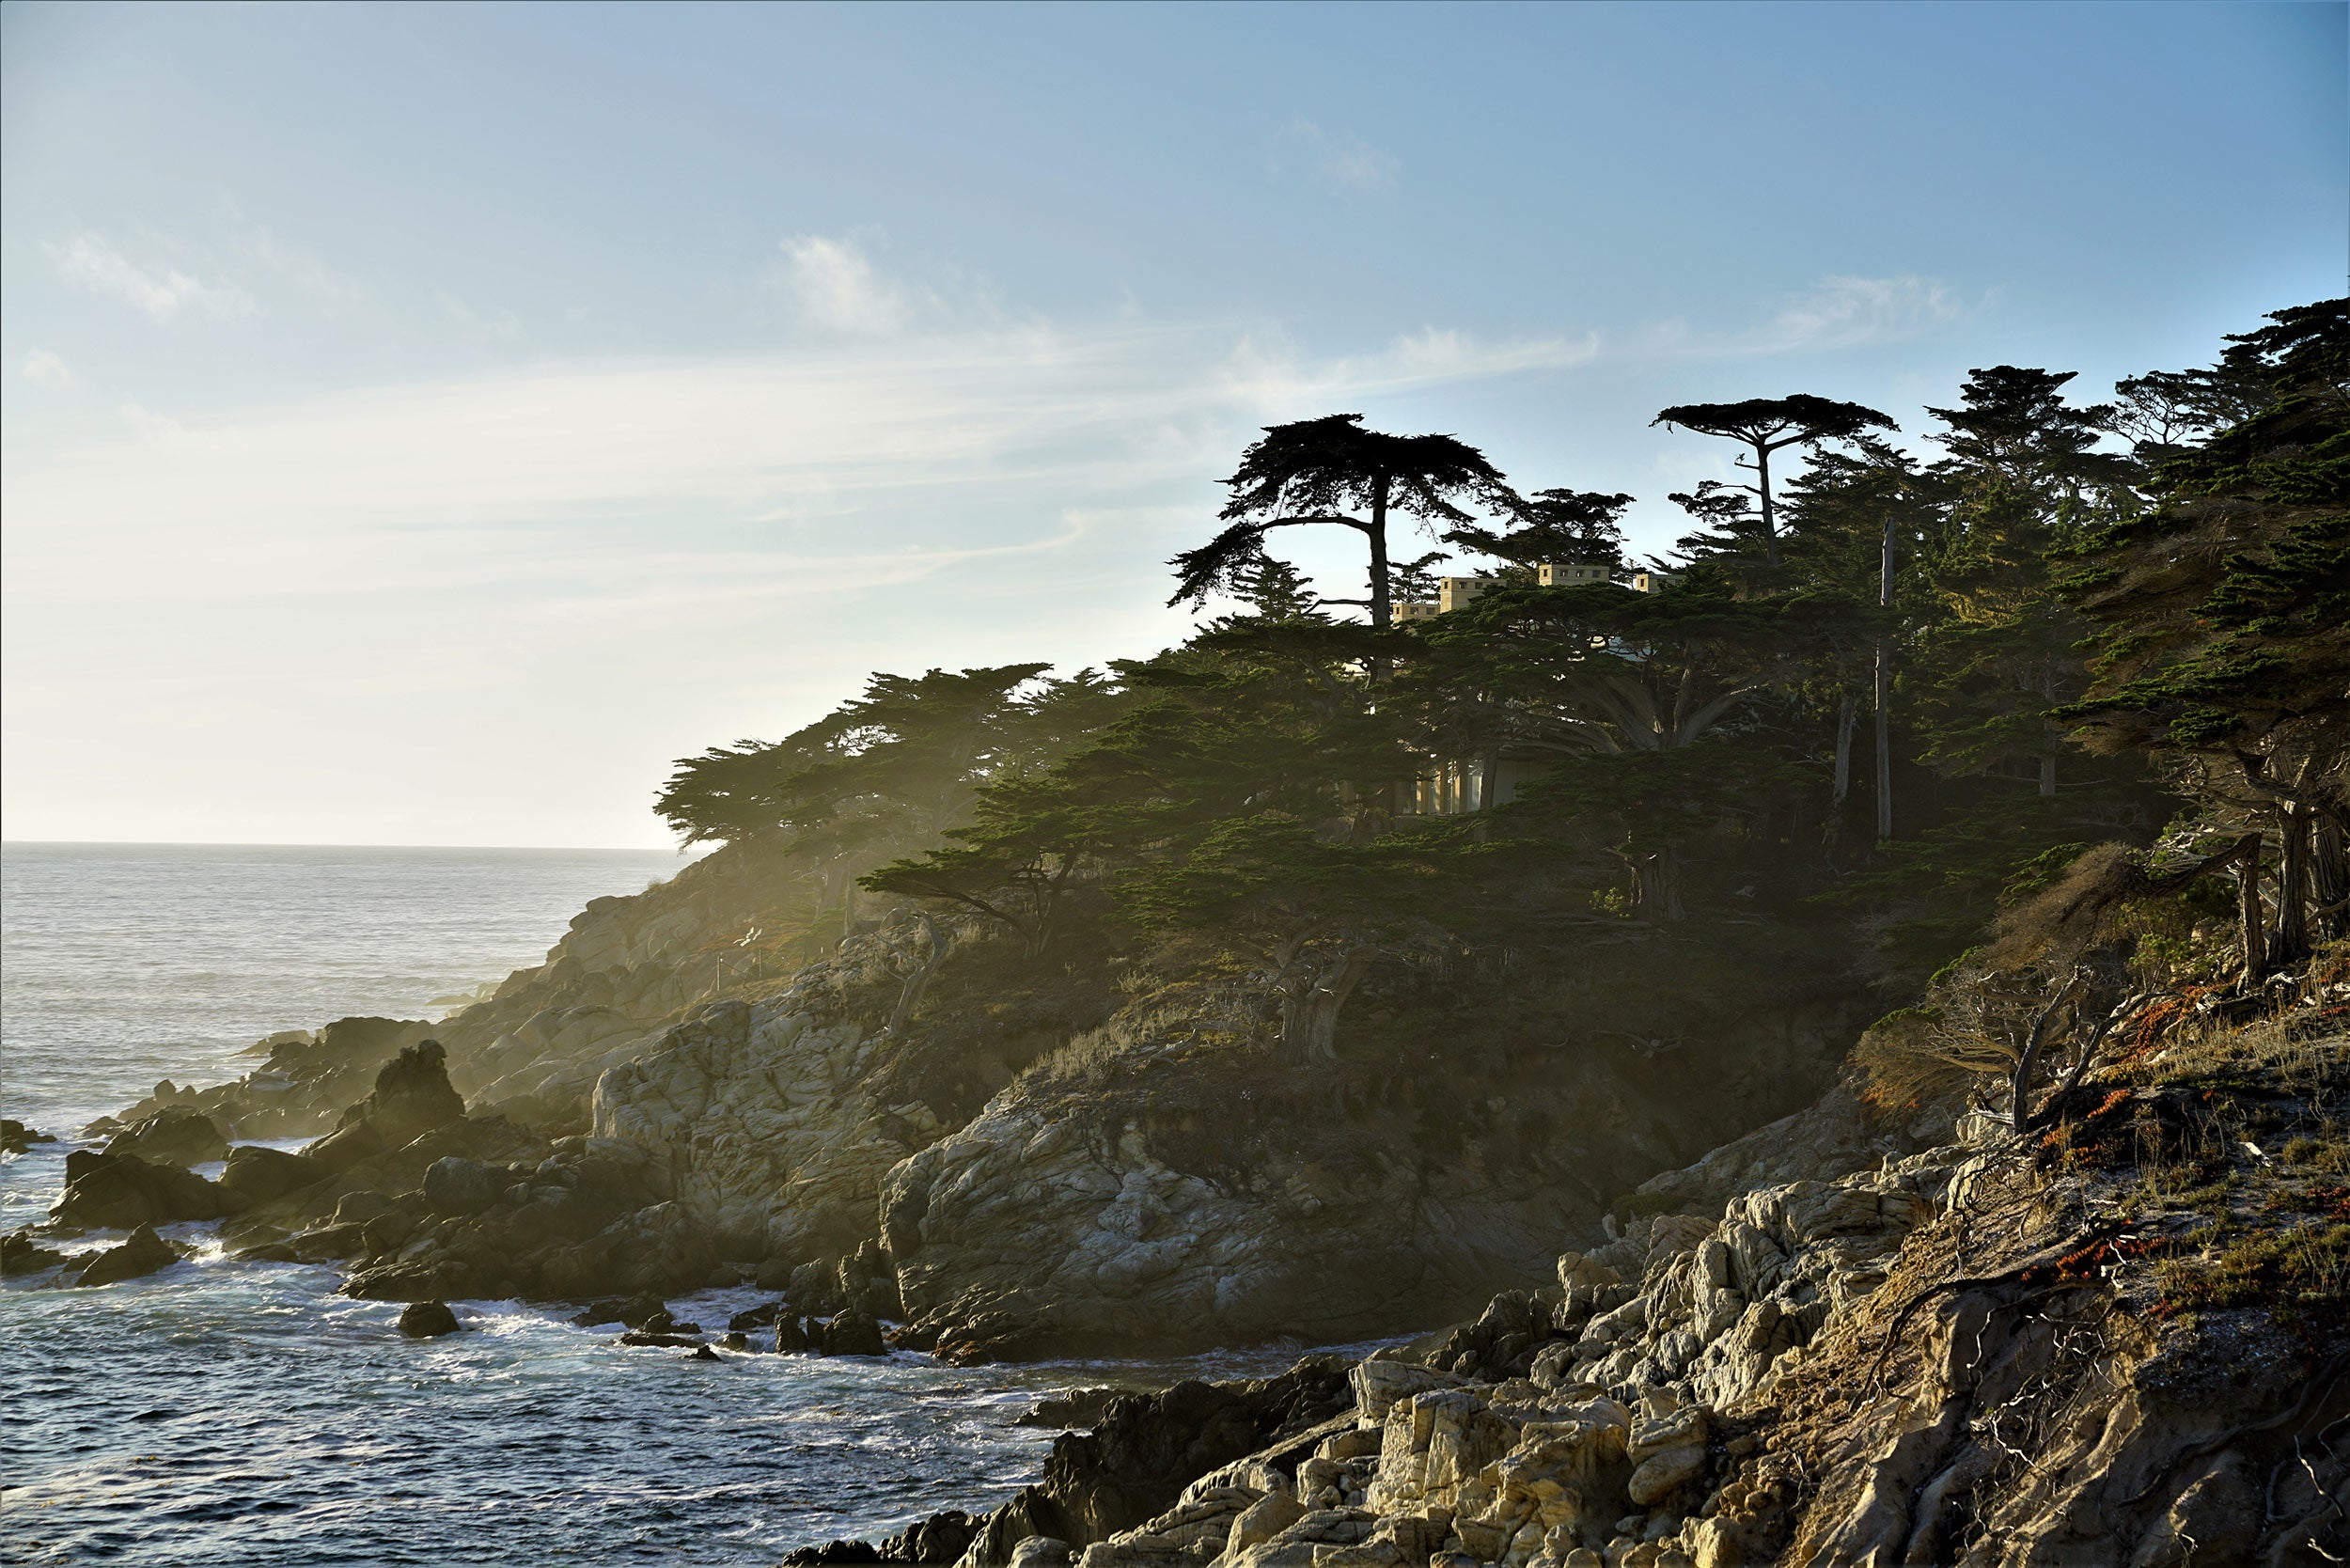 View along the 17 mile drive